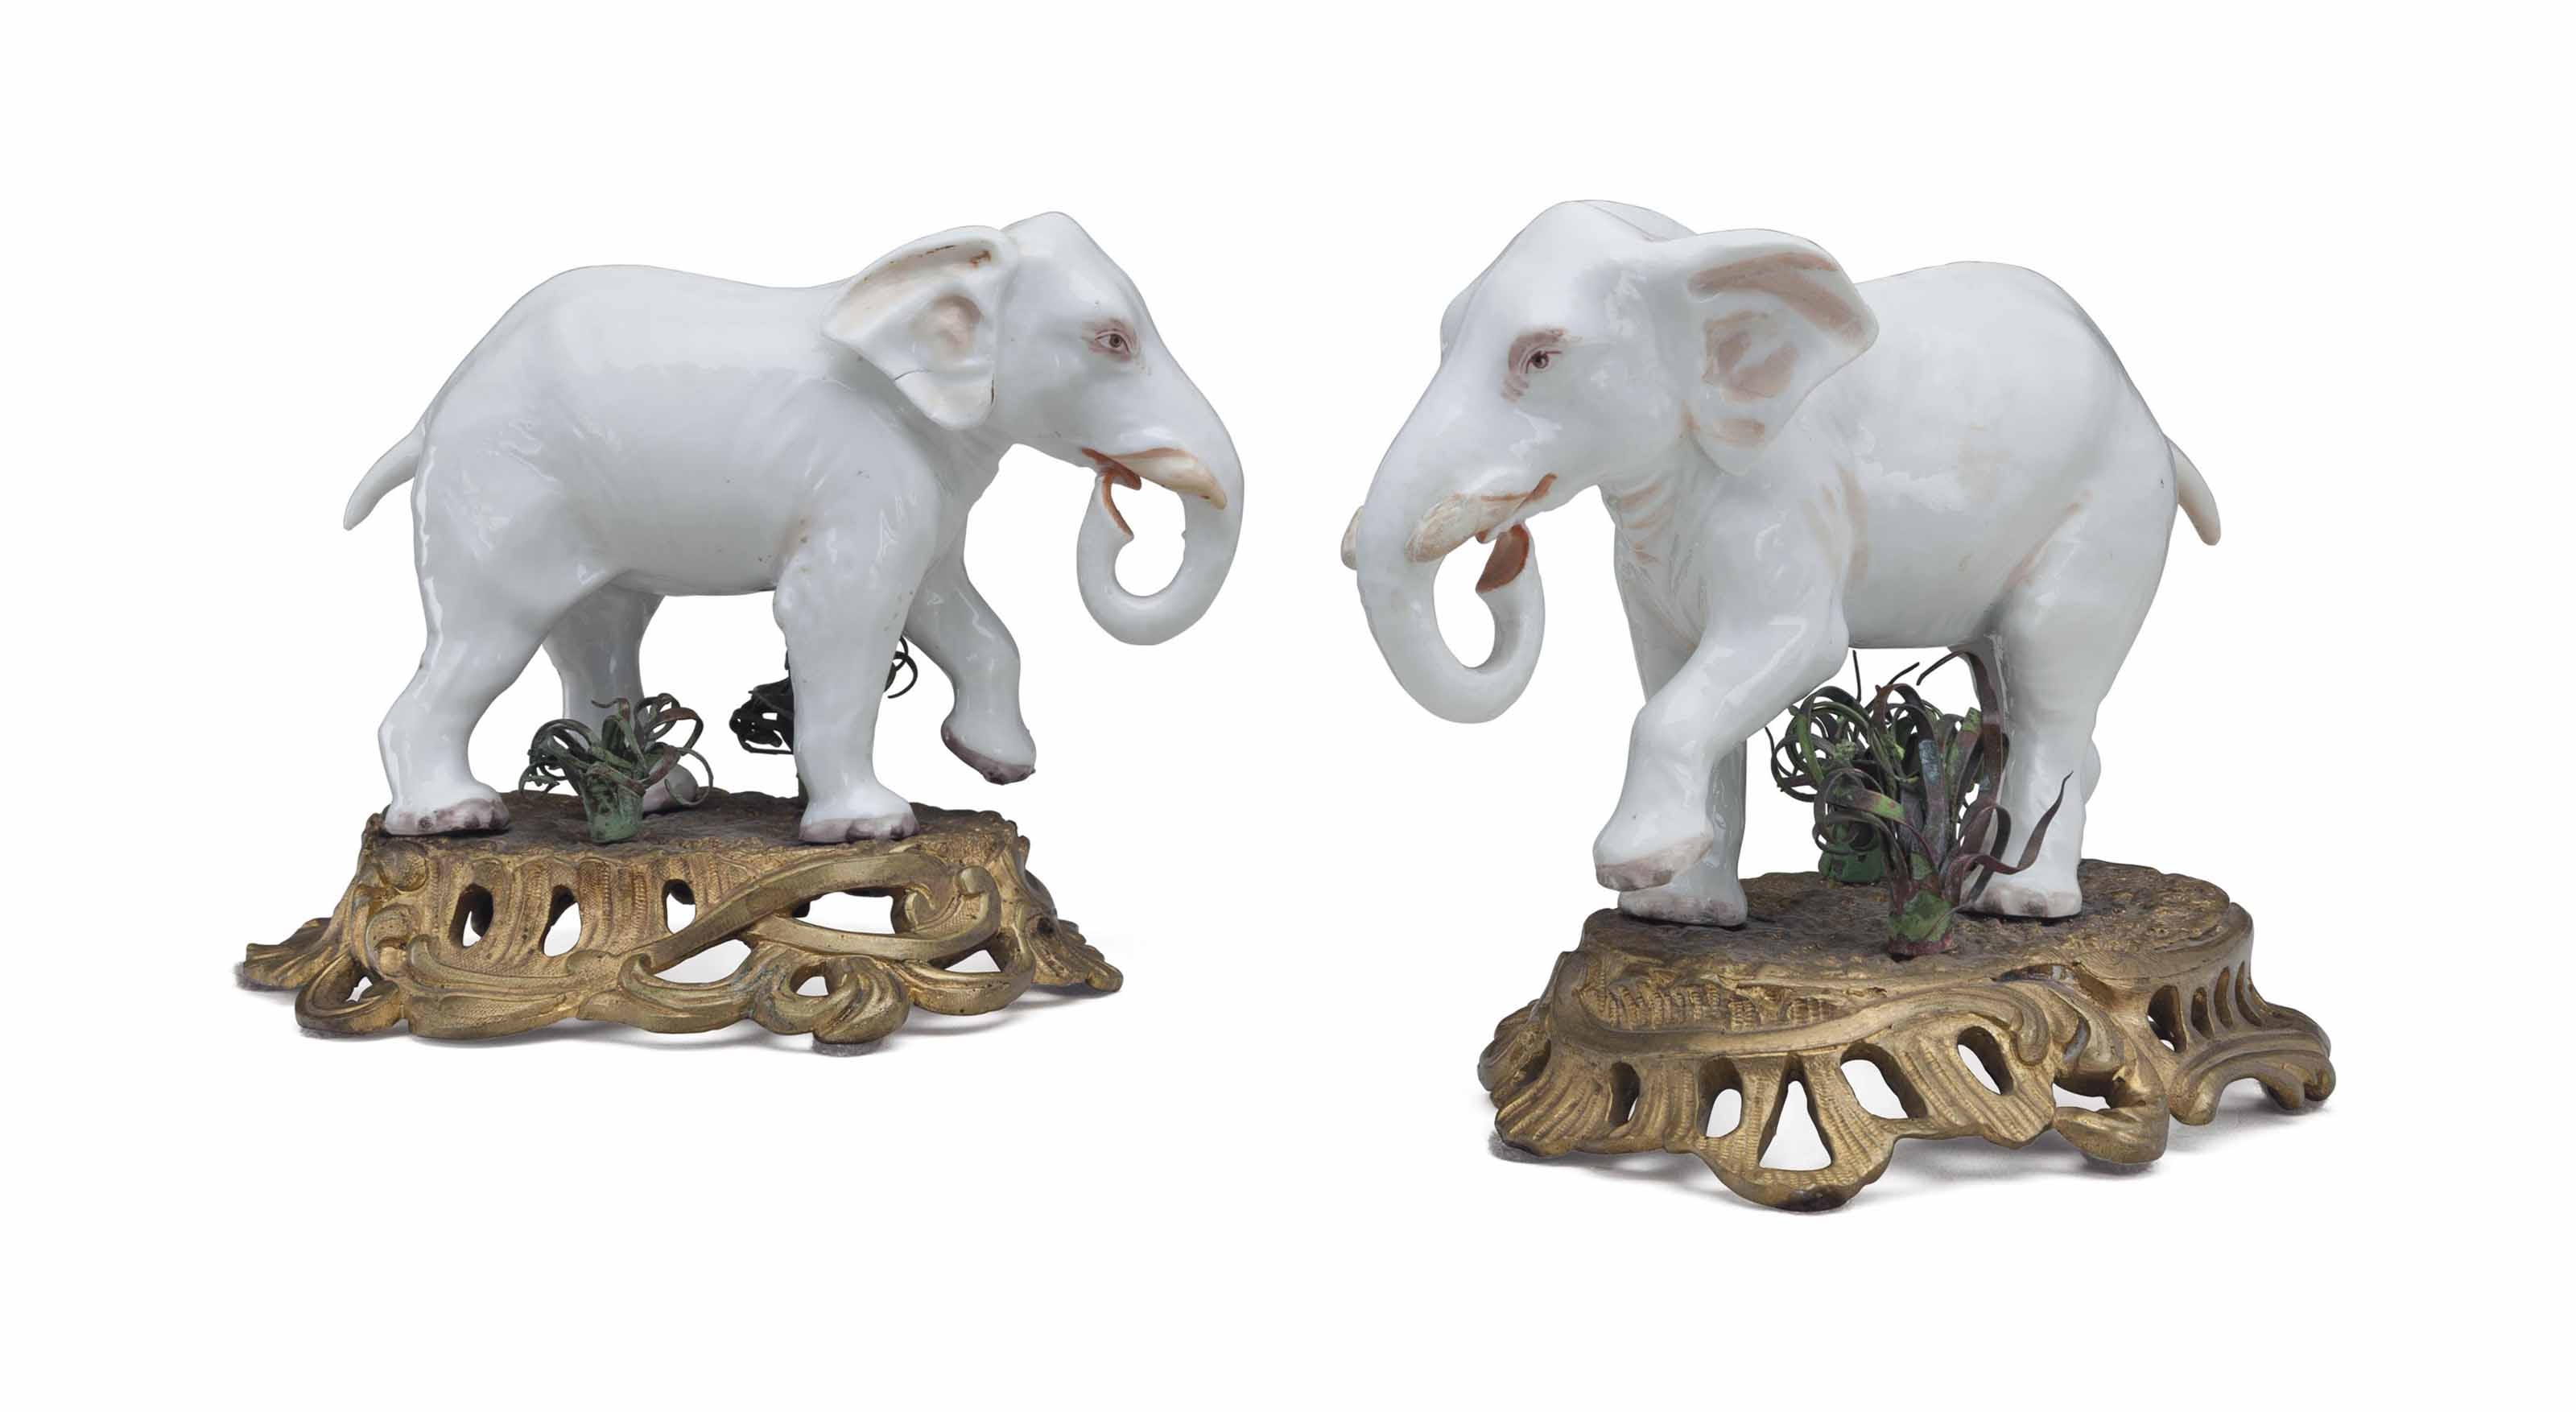 A PAIR OF ORMOLU AND TOLE-MOUNTED SAMSON PORCELAIN MODELS OF ELEPHANTS